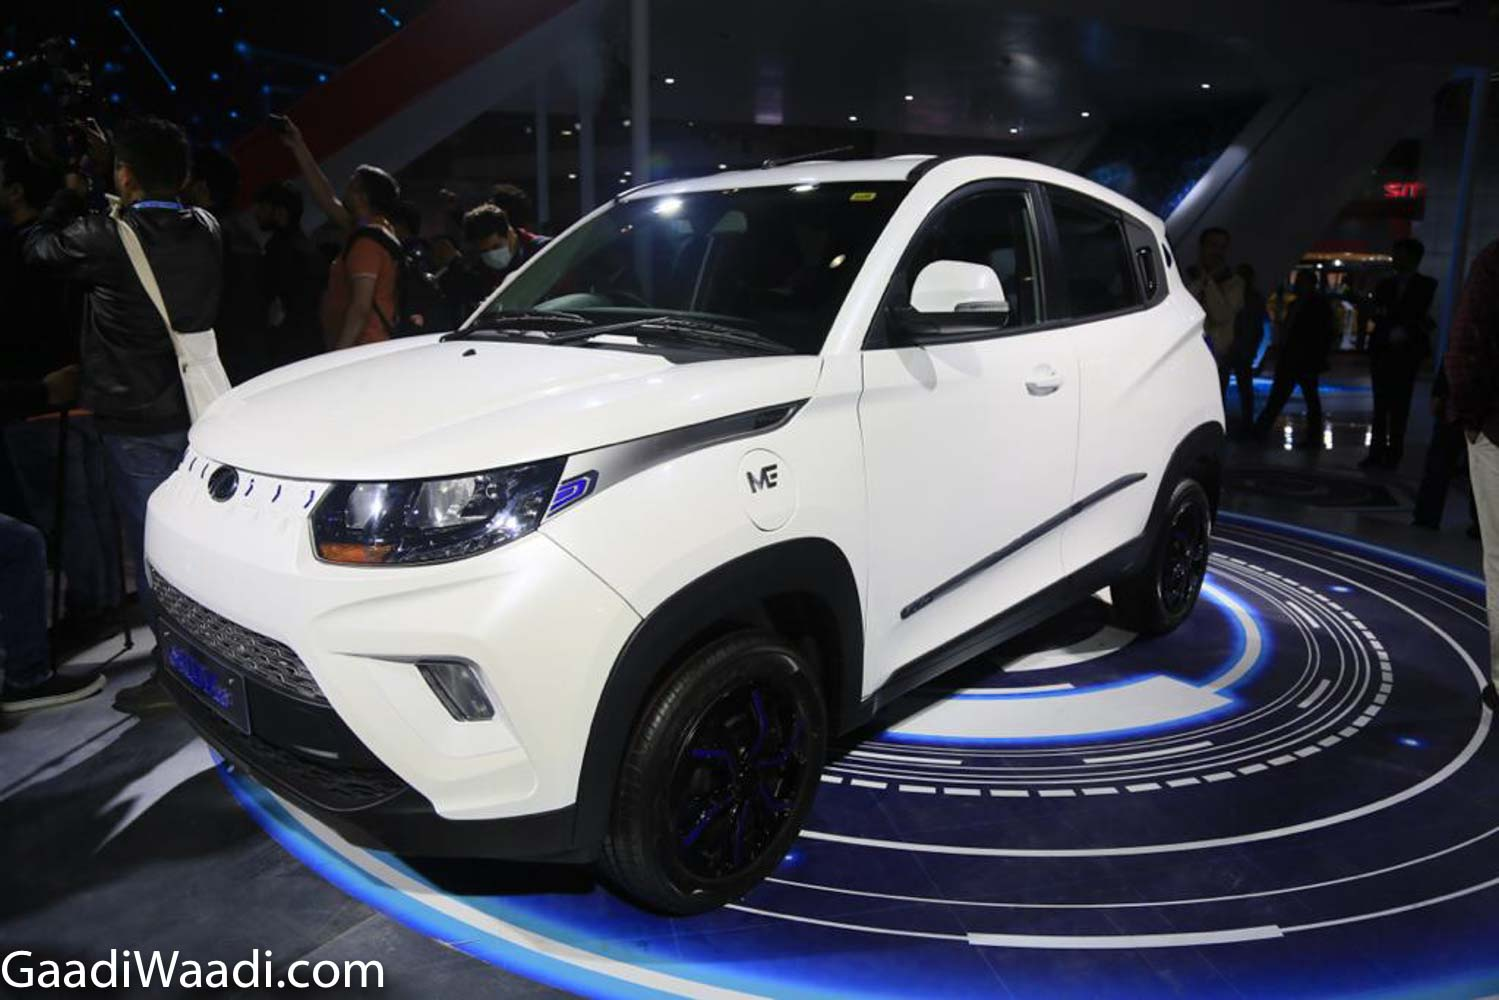 Mahindra eKUV100 Launched At Just Rs. 8.25 Lakh; India's Most Affordable EV